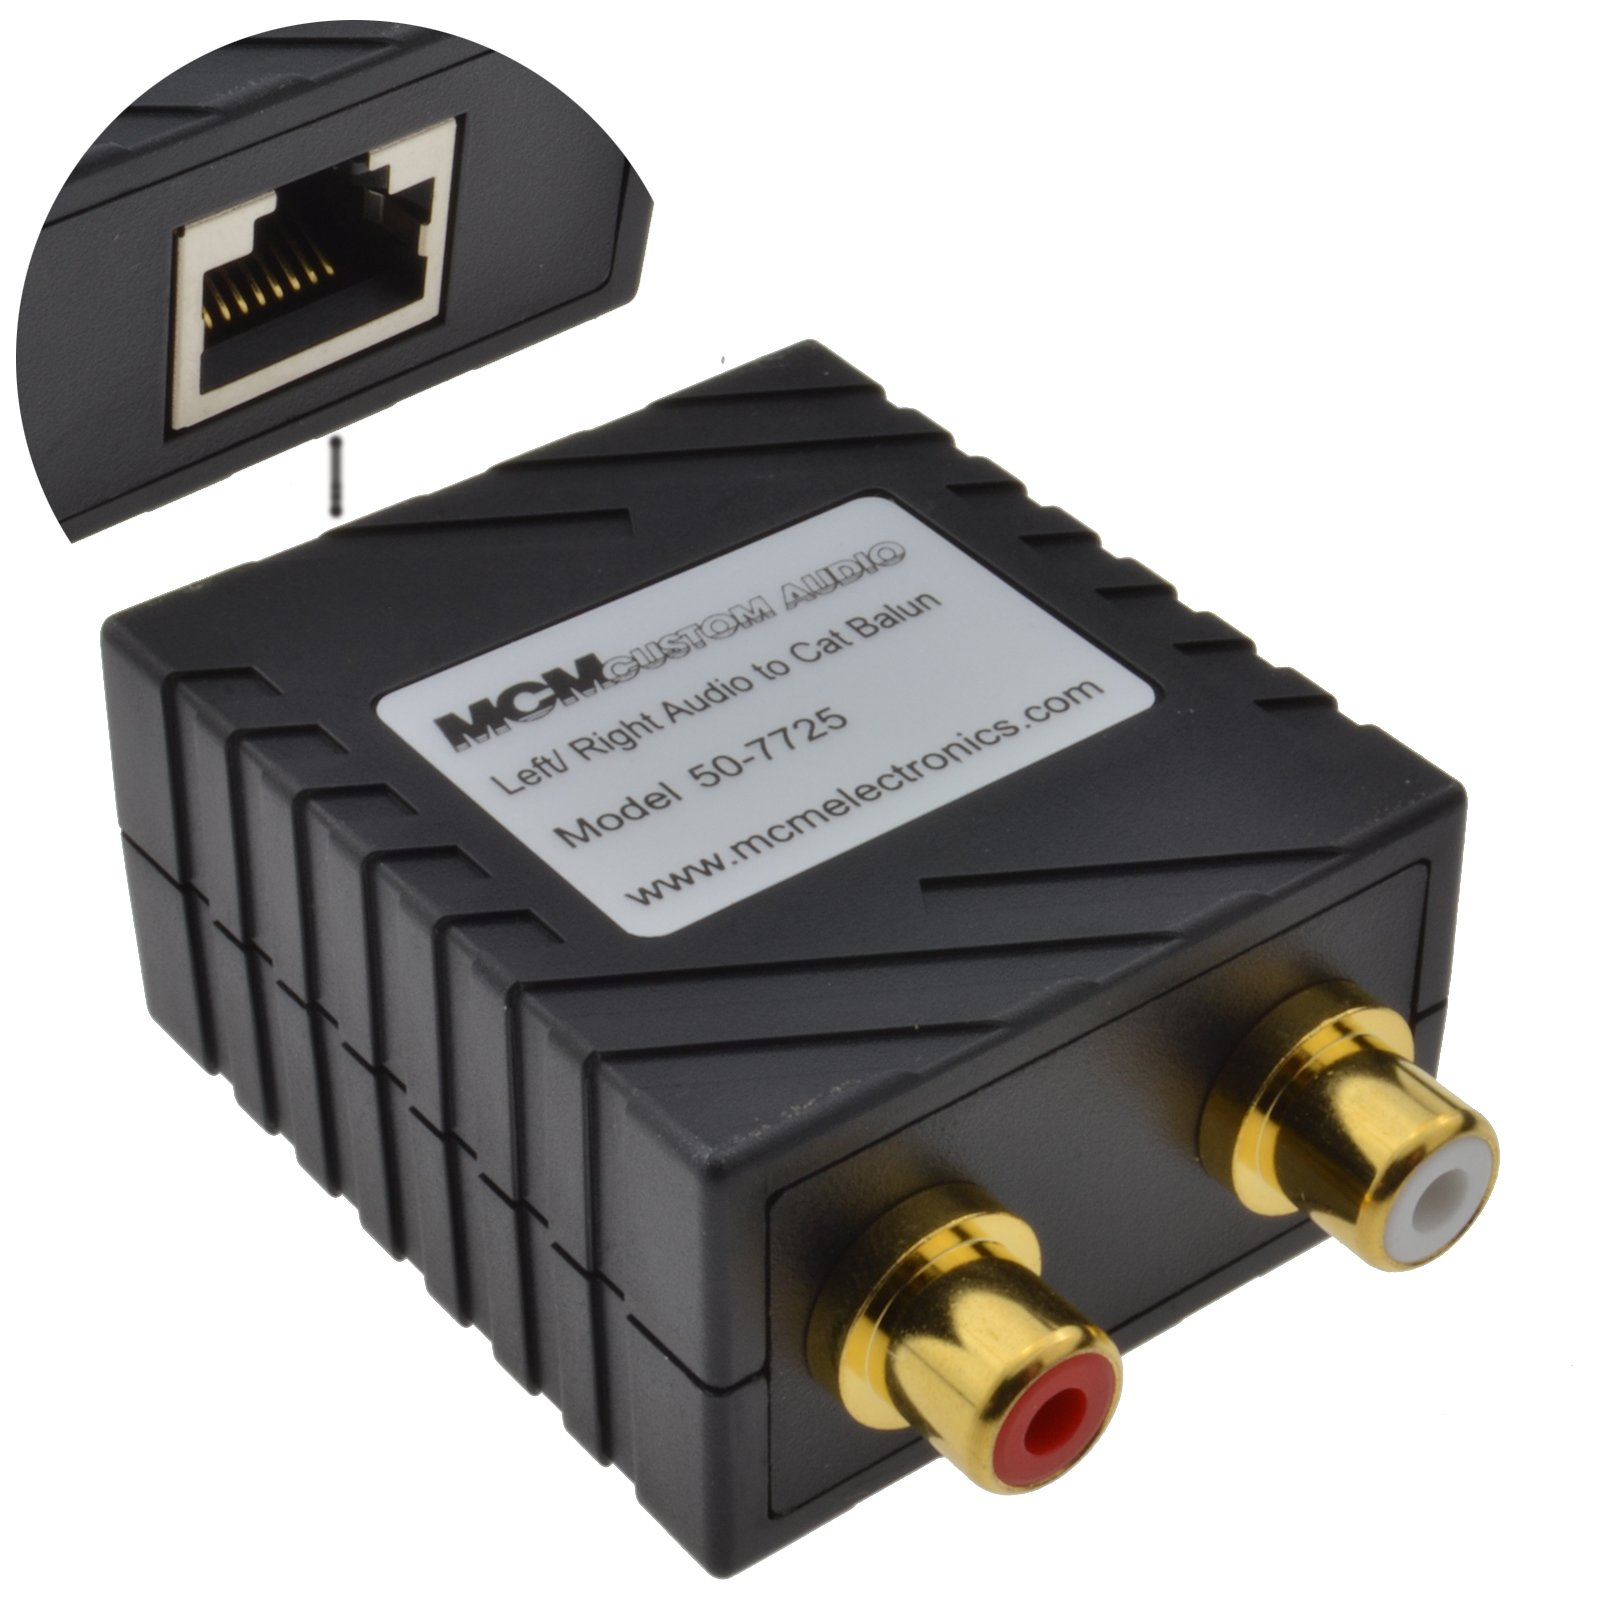 kenable Audio Sender Over LAN Cat5 Ethernet Cable Phono RCA Extender 150m (~500 feet) by kenable